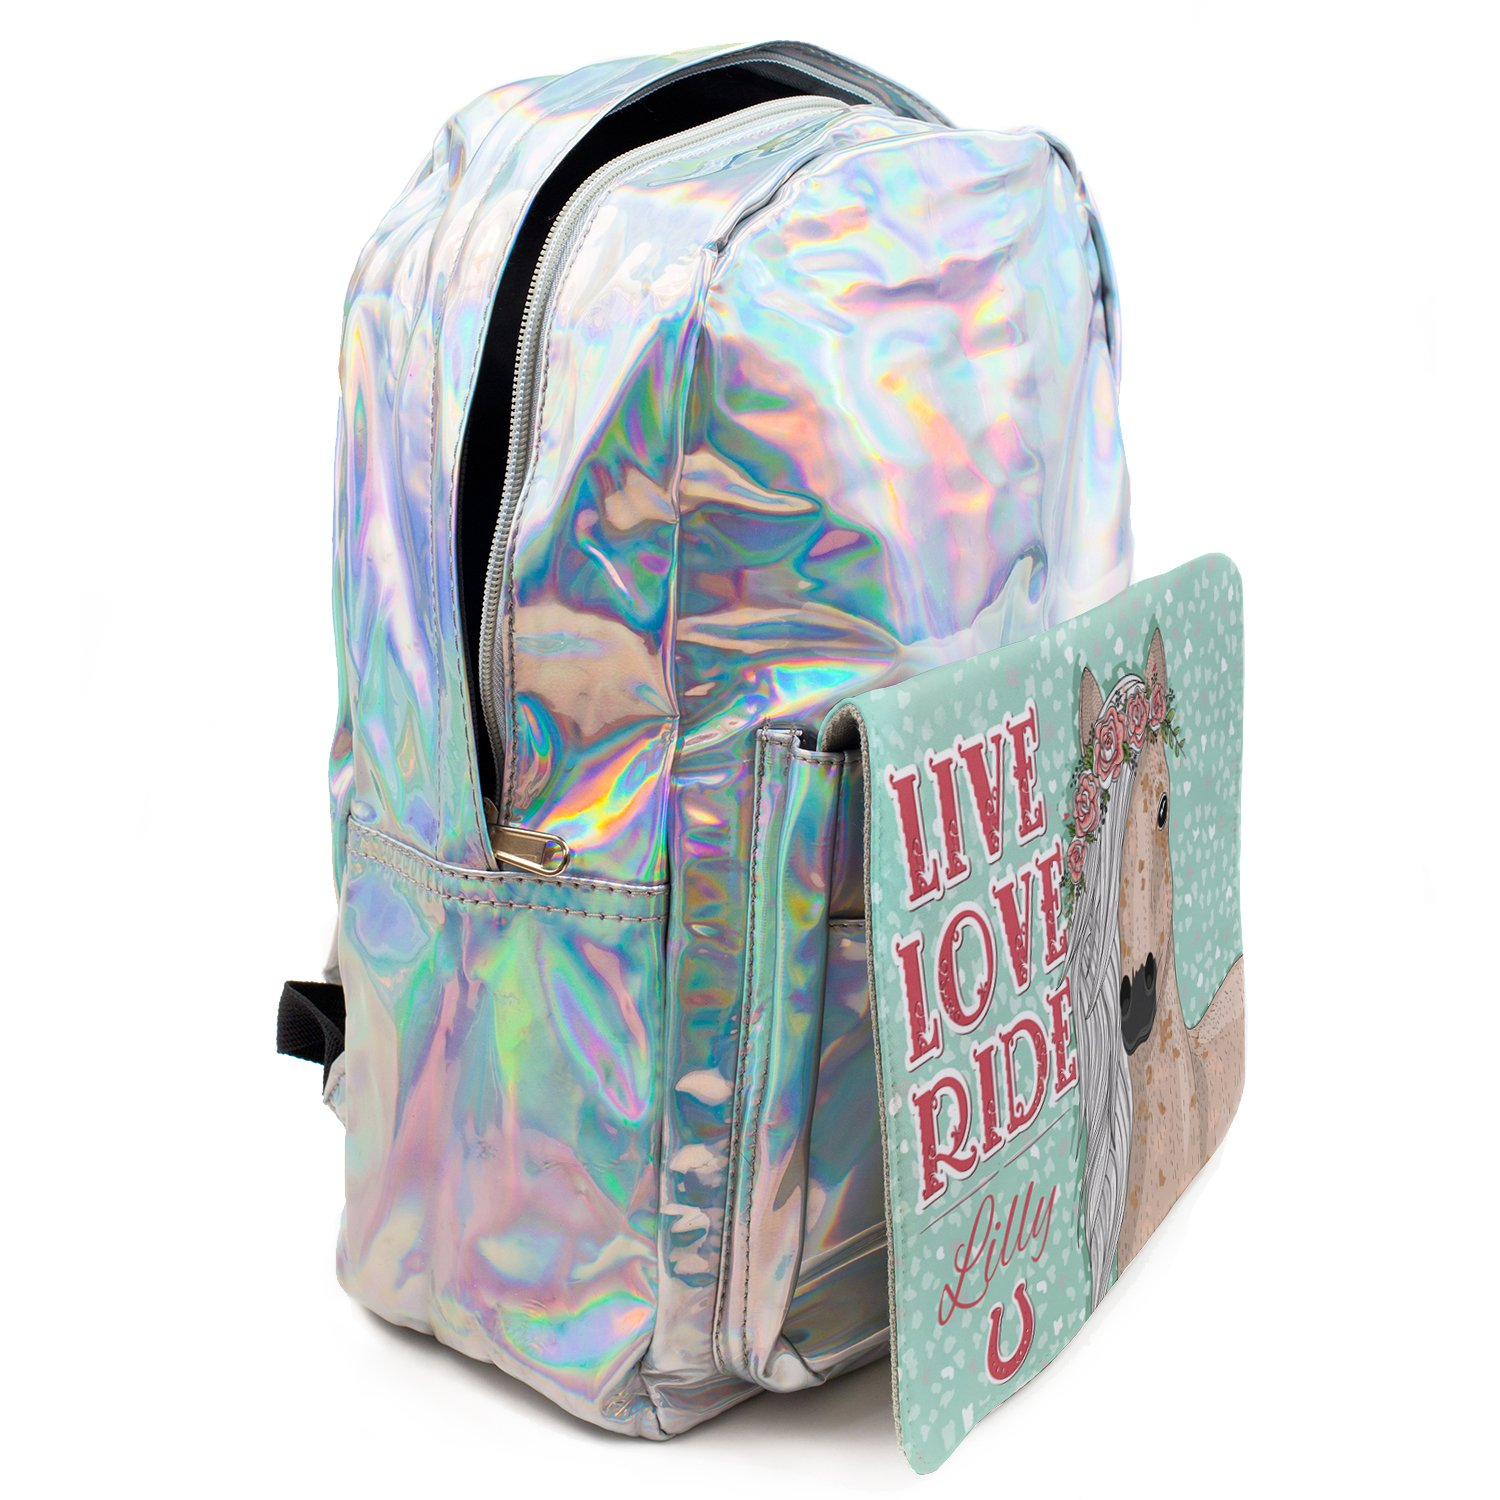 Personalised Girls Backpack CUTE HORSE Holographic Shiny Silver School Bag KS150